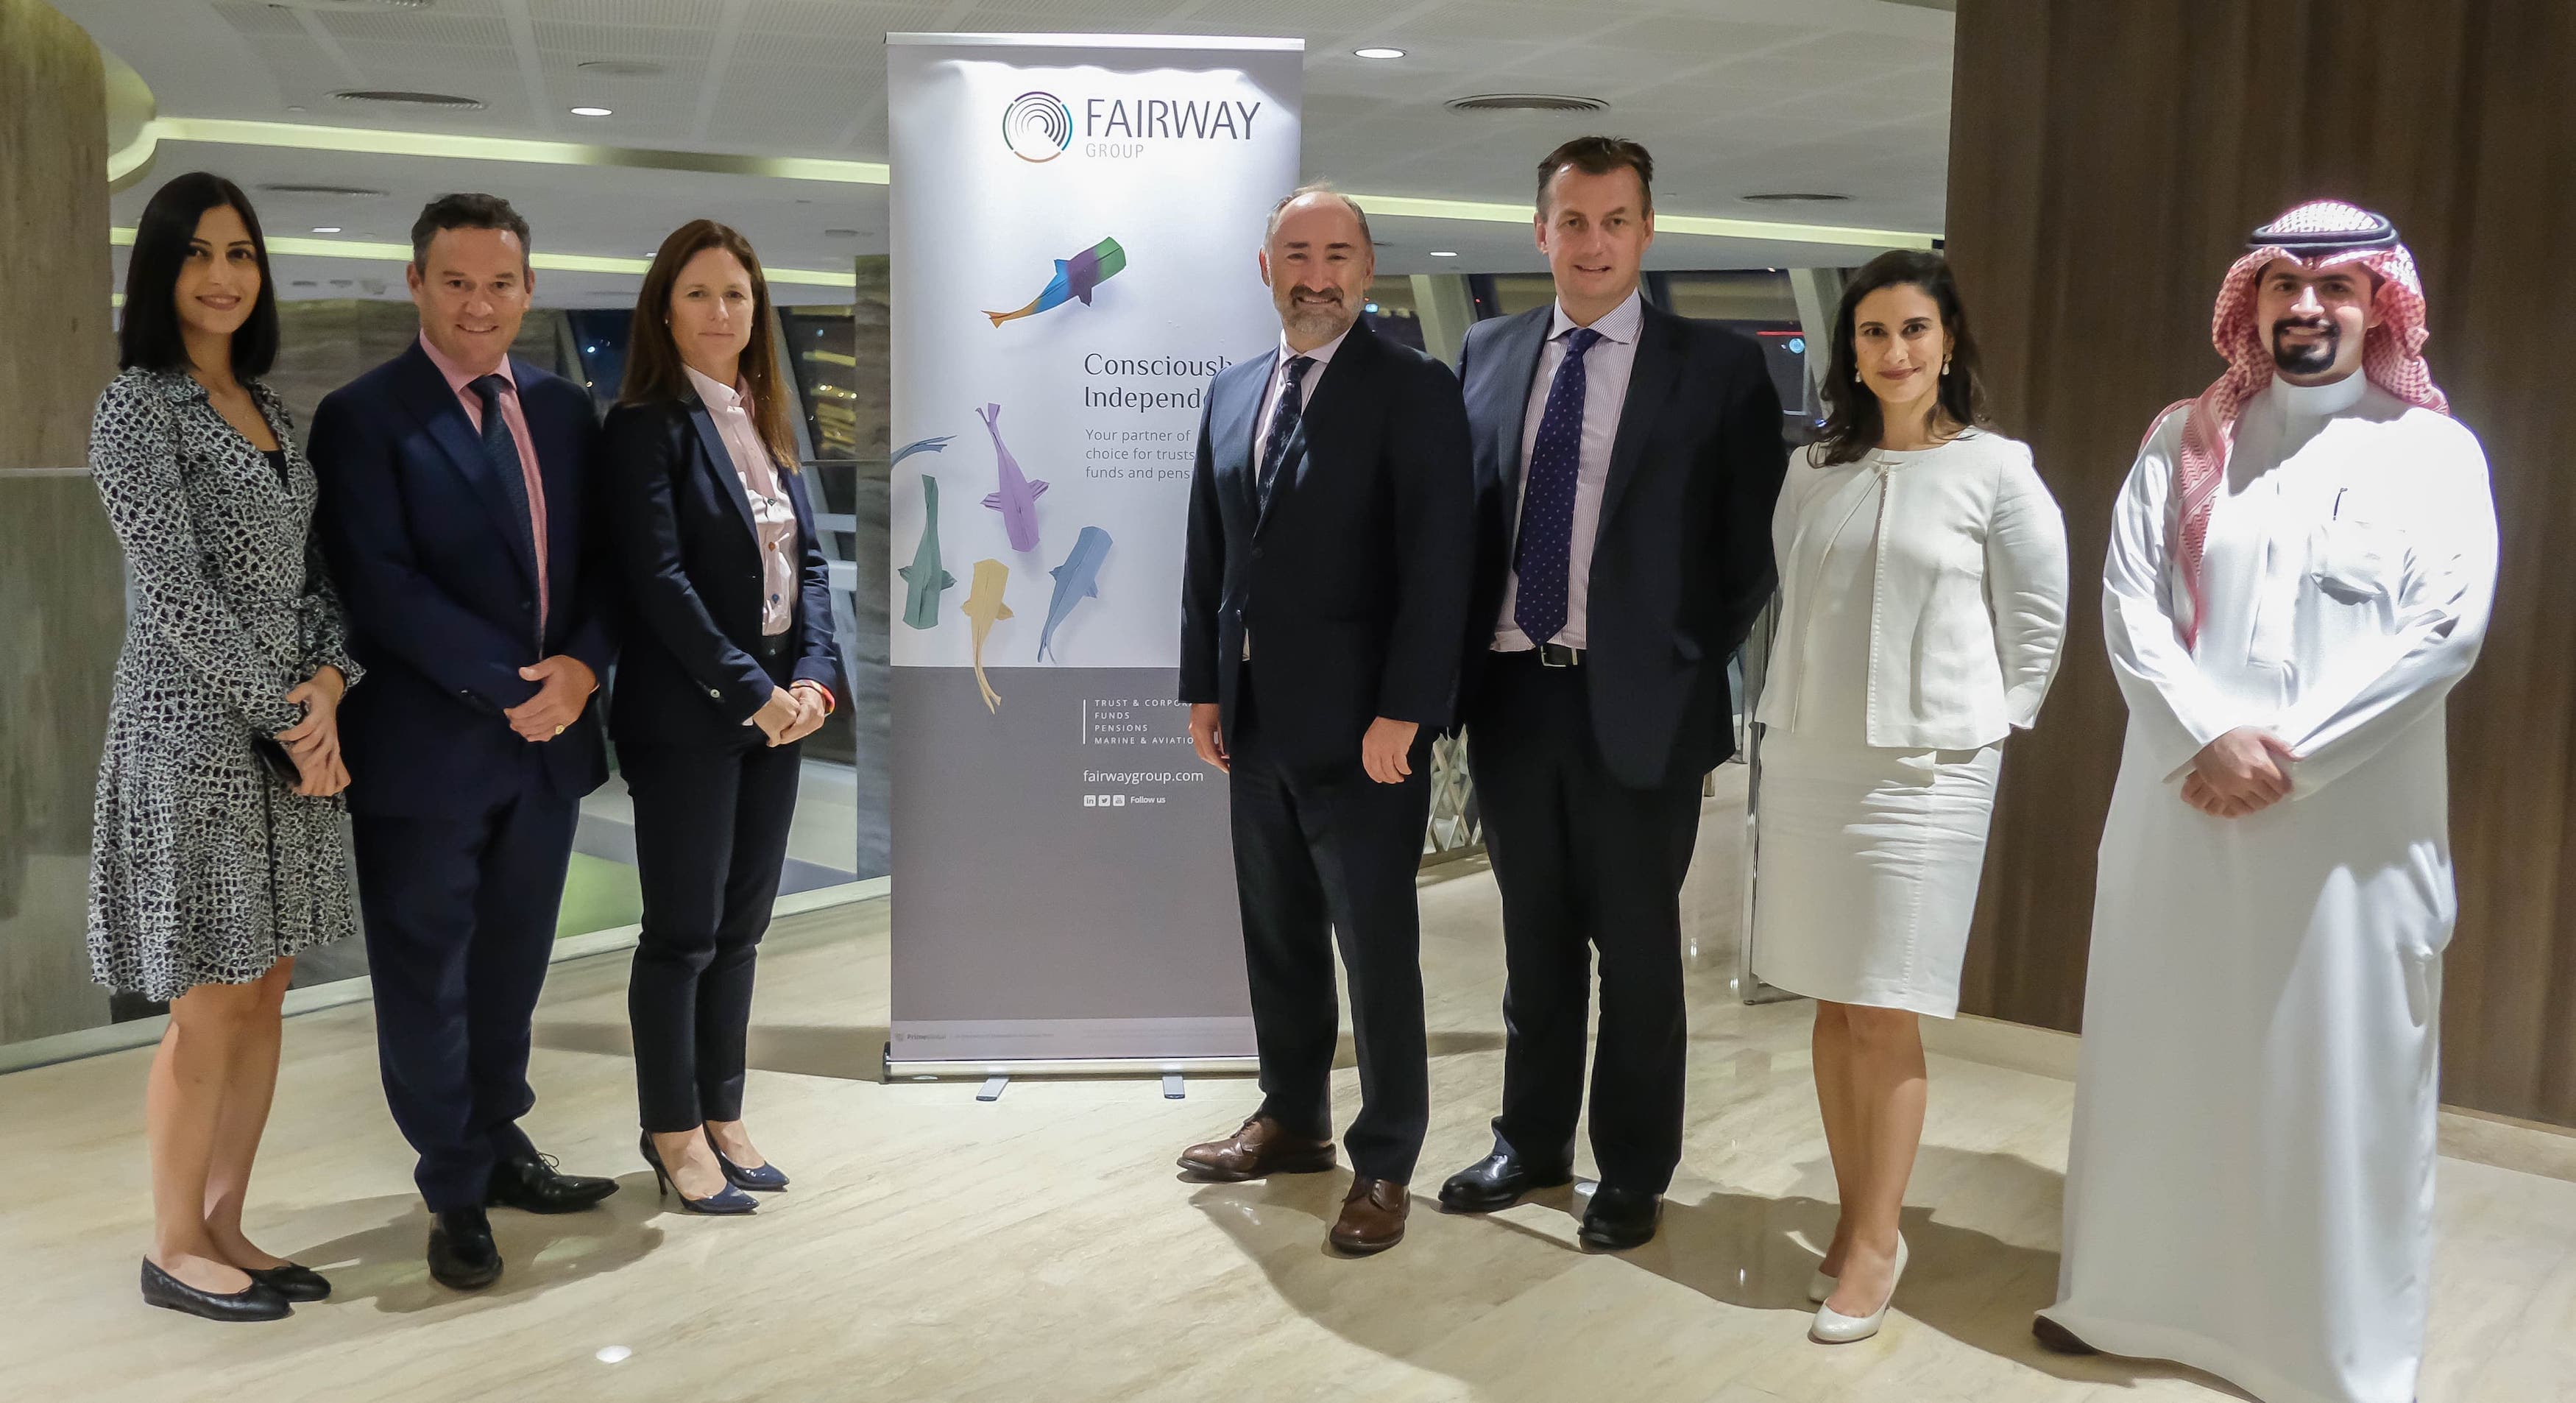 Fairway Group sets foot in Bahrain as part of a global expansion strategy